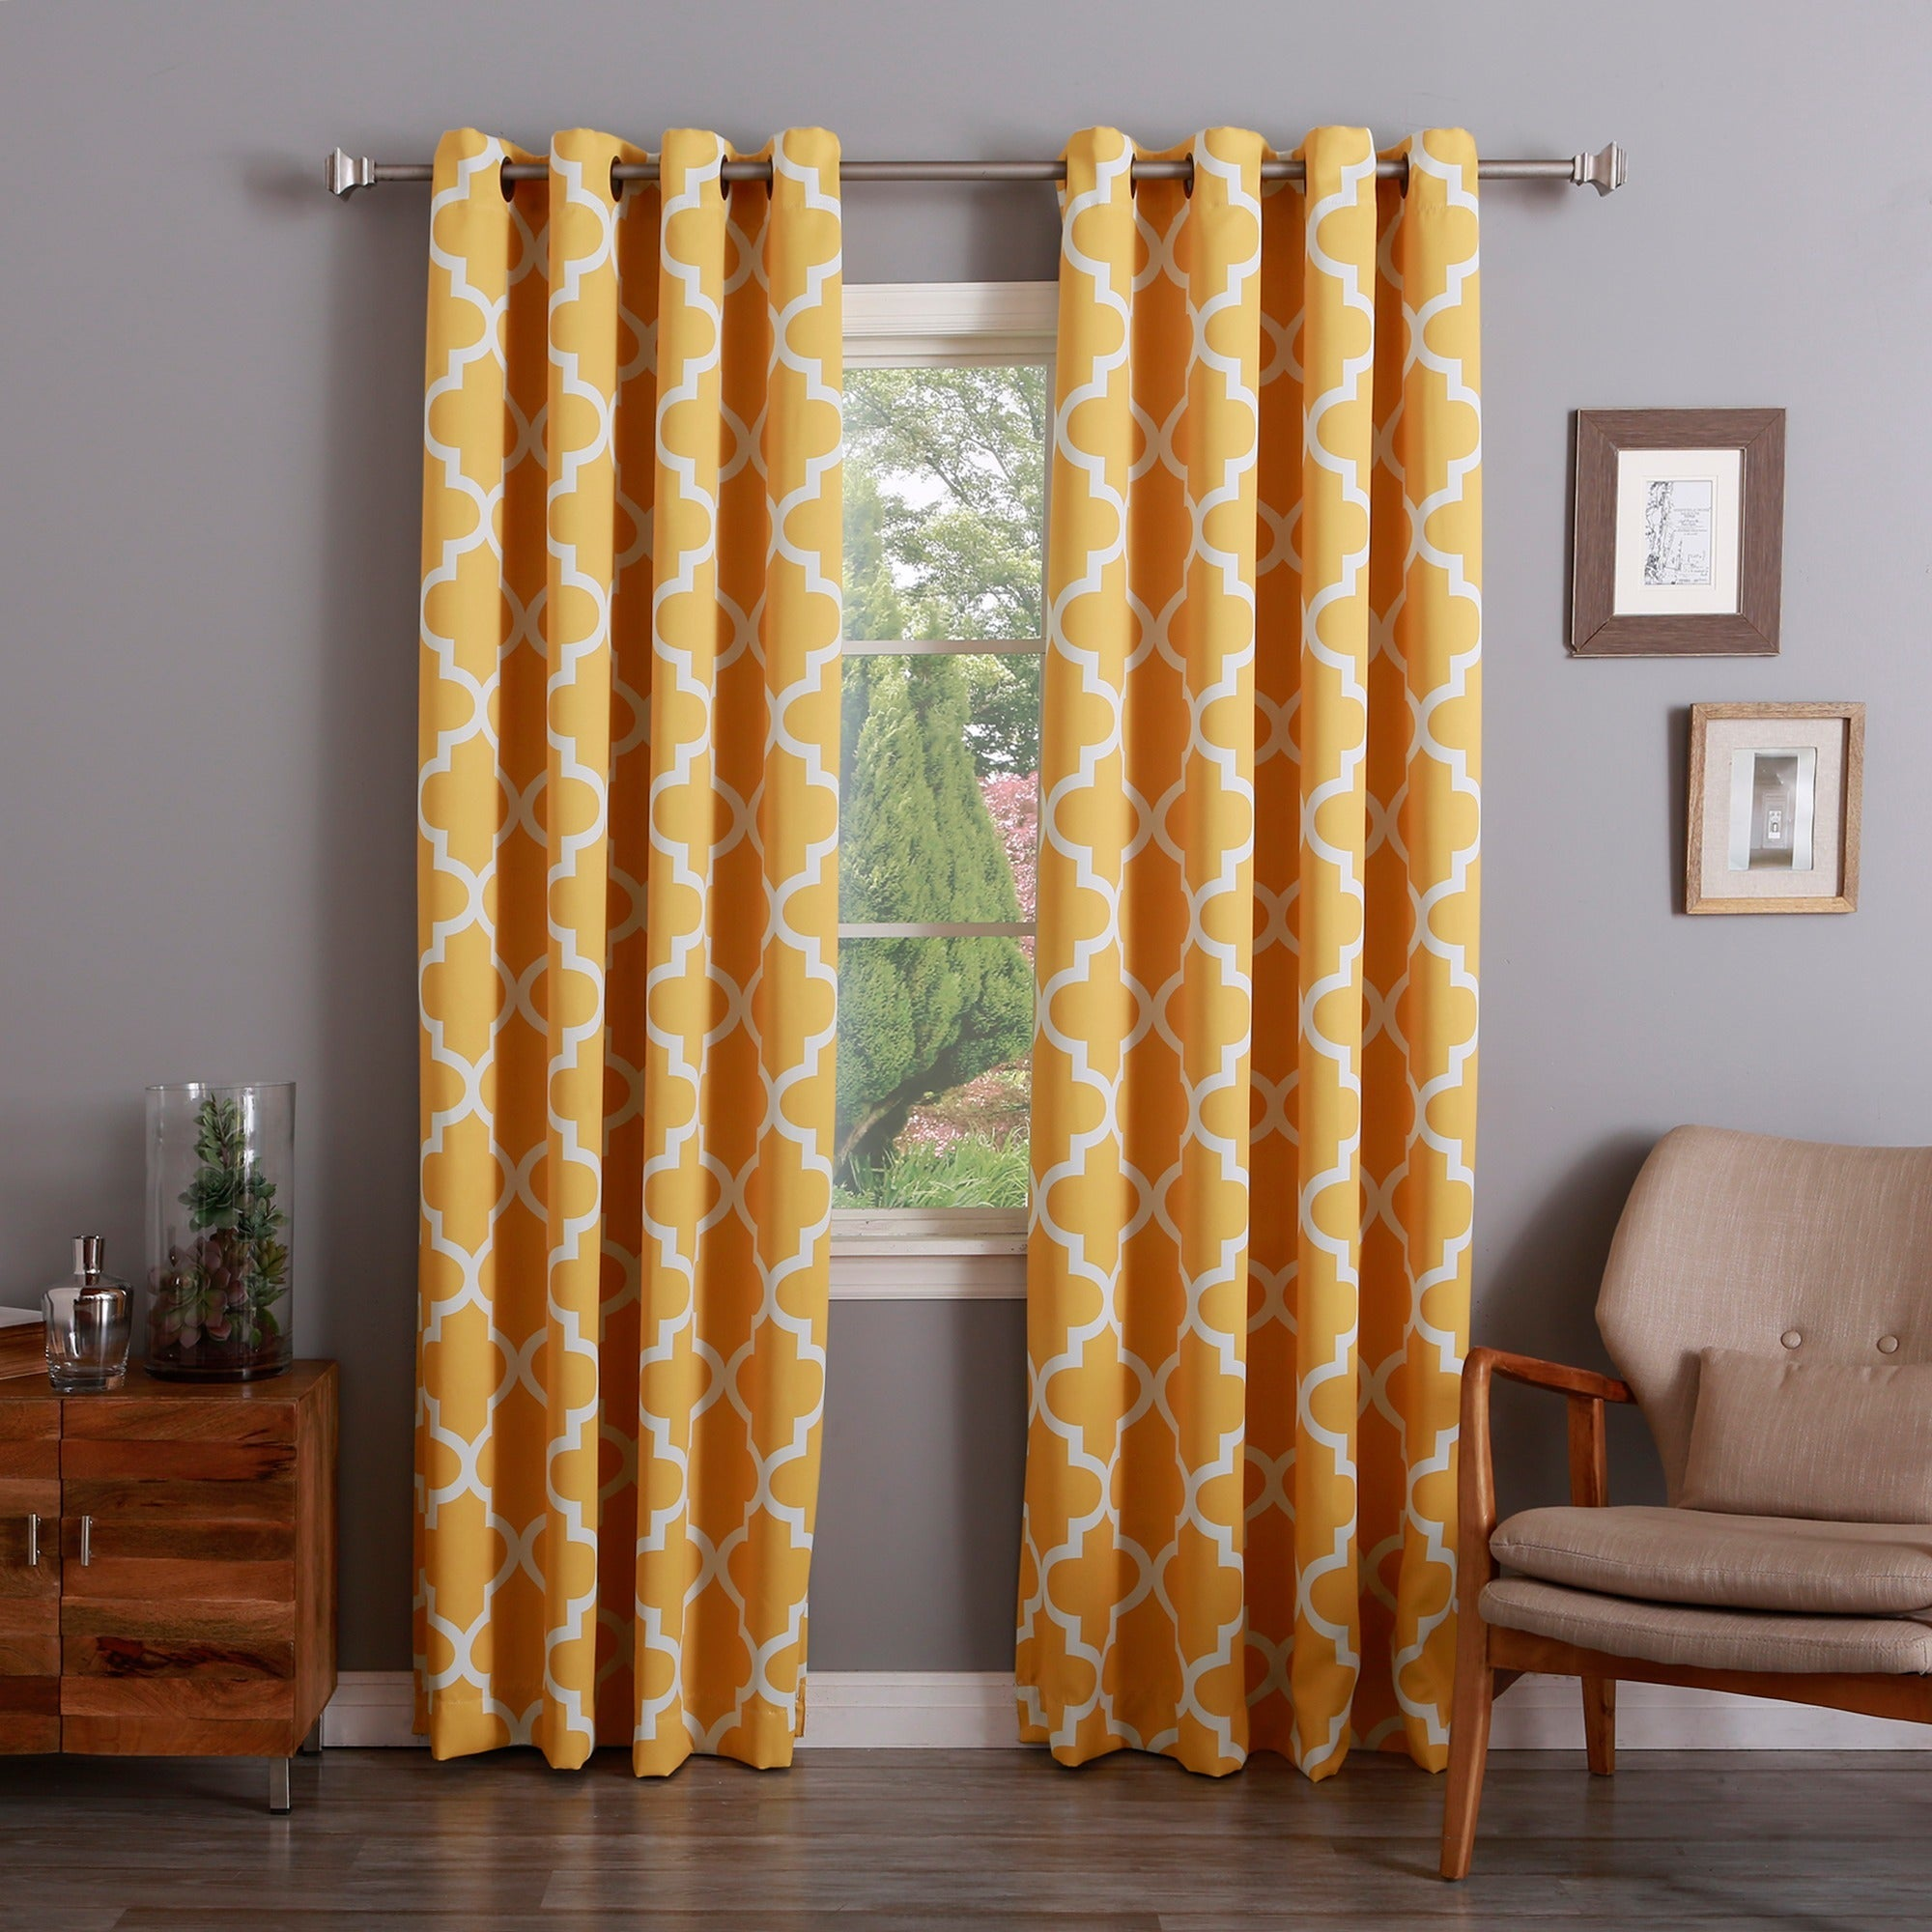 Aurora Home Moroccan Tile Room Darkening Grommet Top 84-inch Curtain Panel  Pair - Free Shipping Today - Overstock.com - 16117311